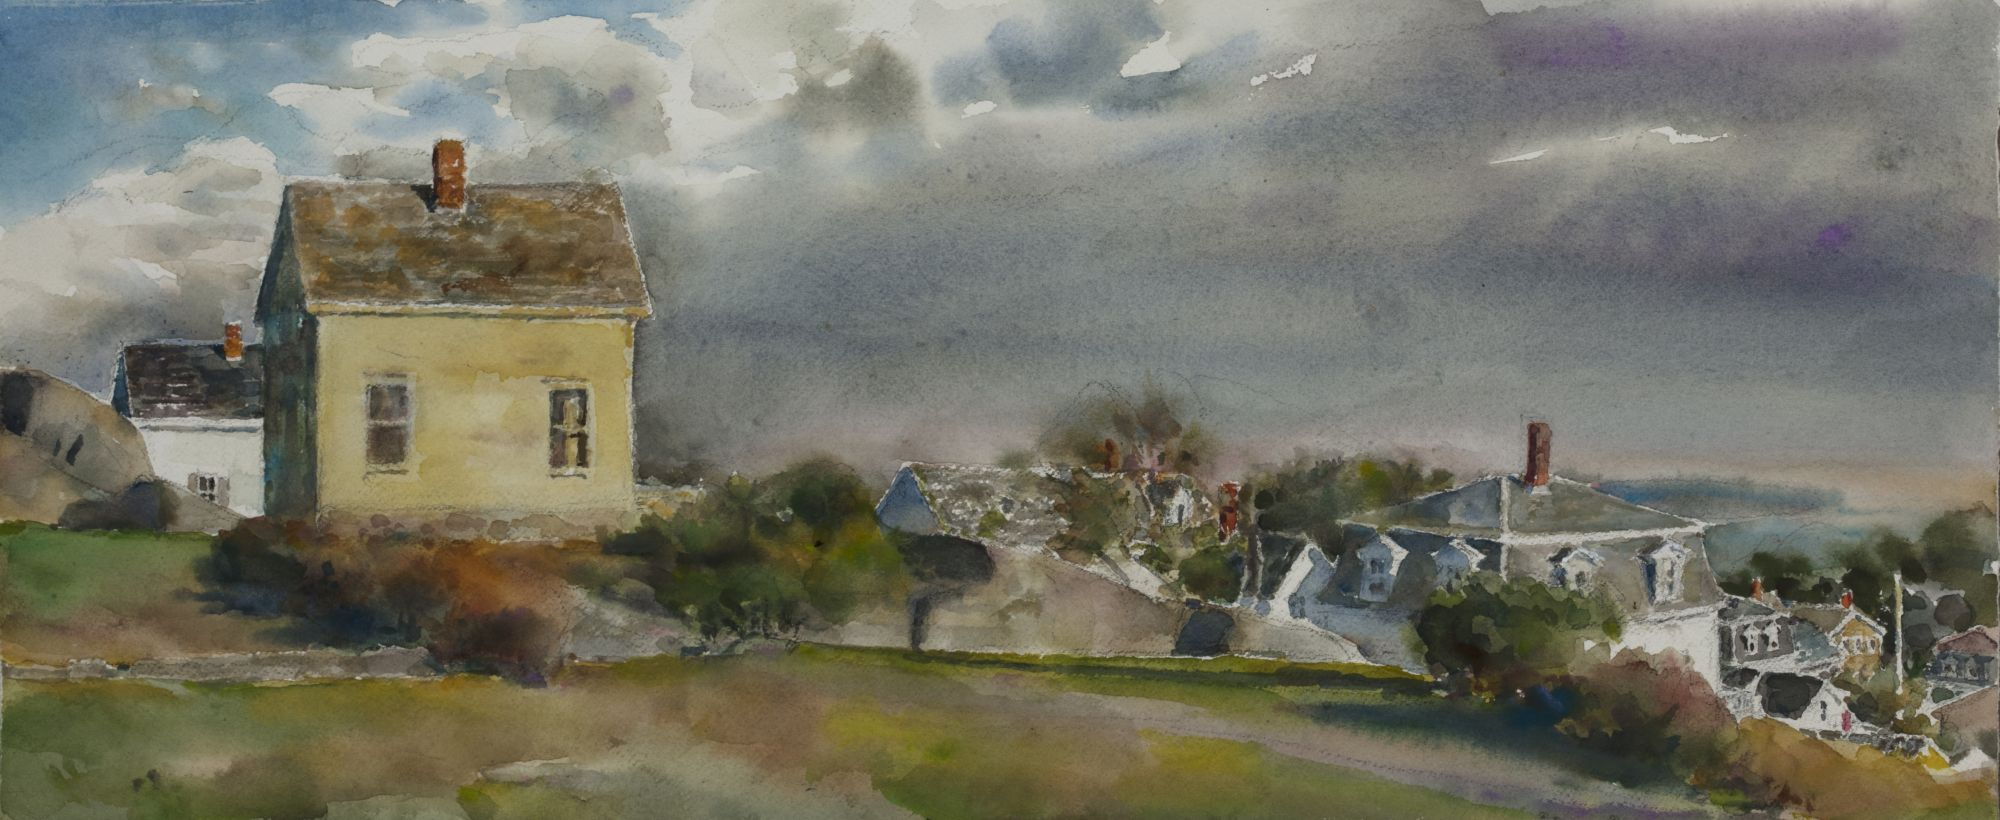 Renew watercolor artist magazine -  Clearing Storm Stonington 2017 Watercolor 11 X 24 Inches